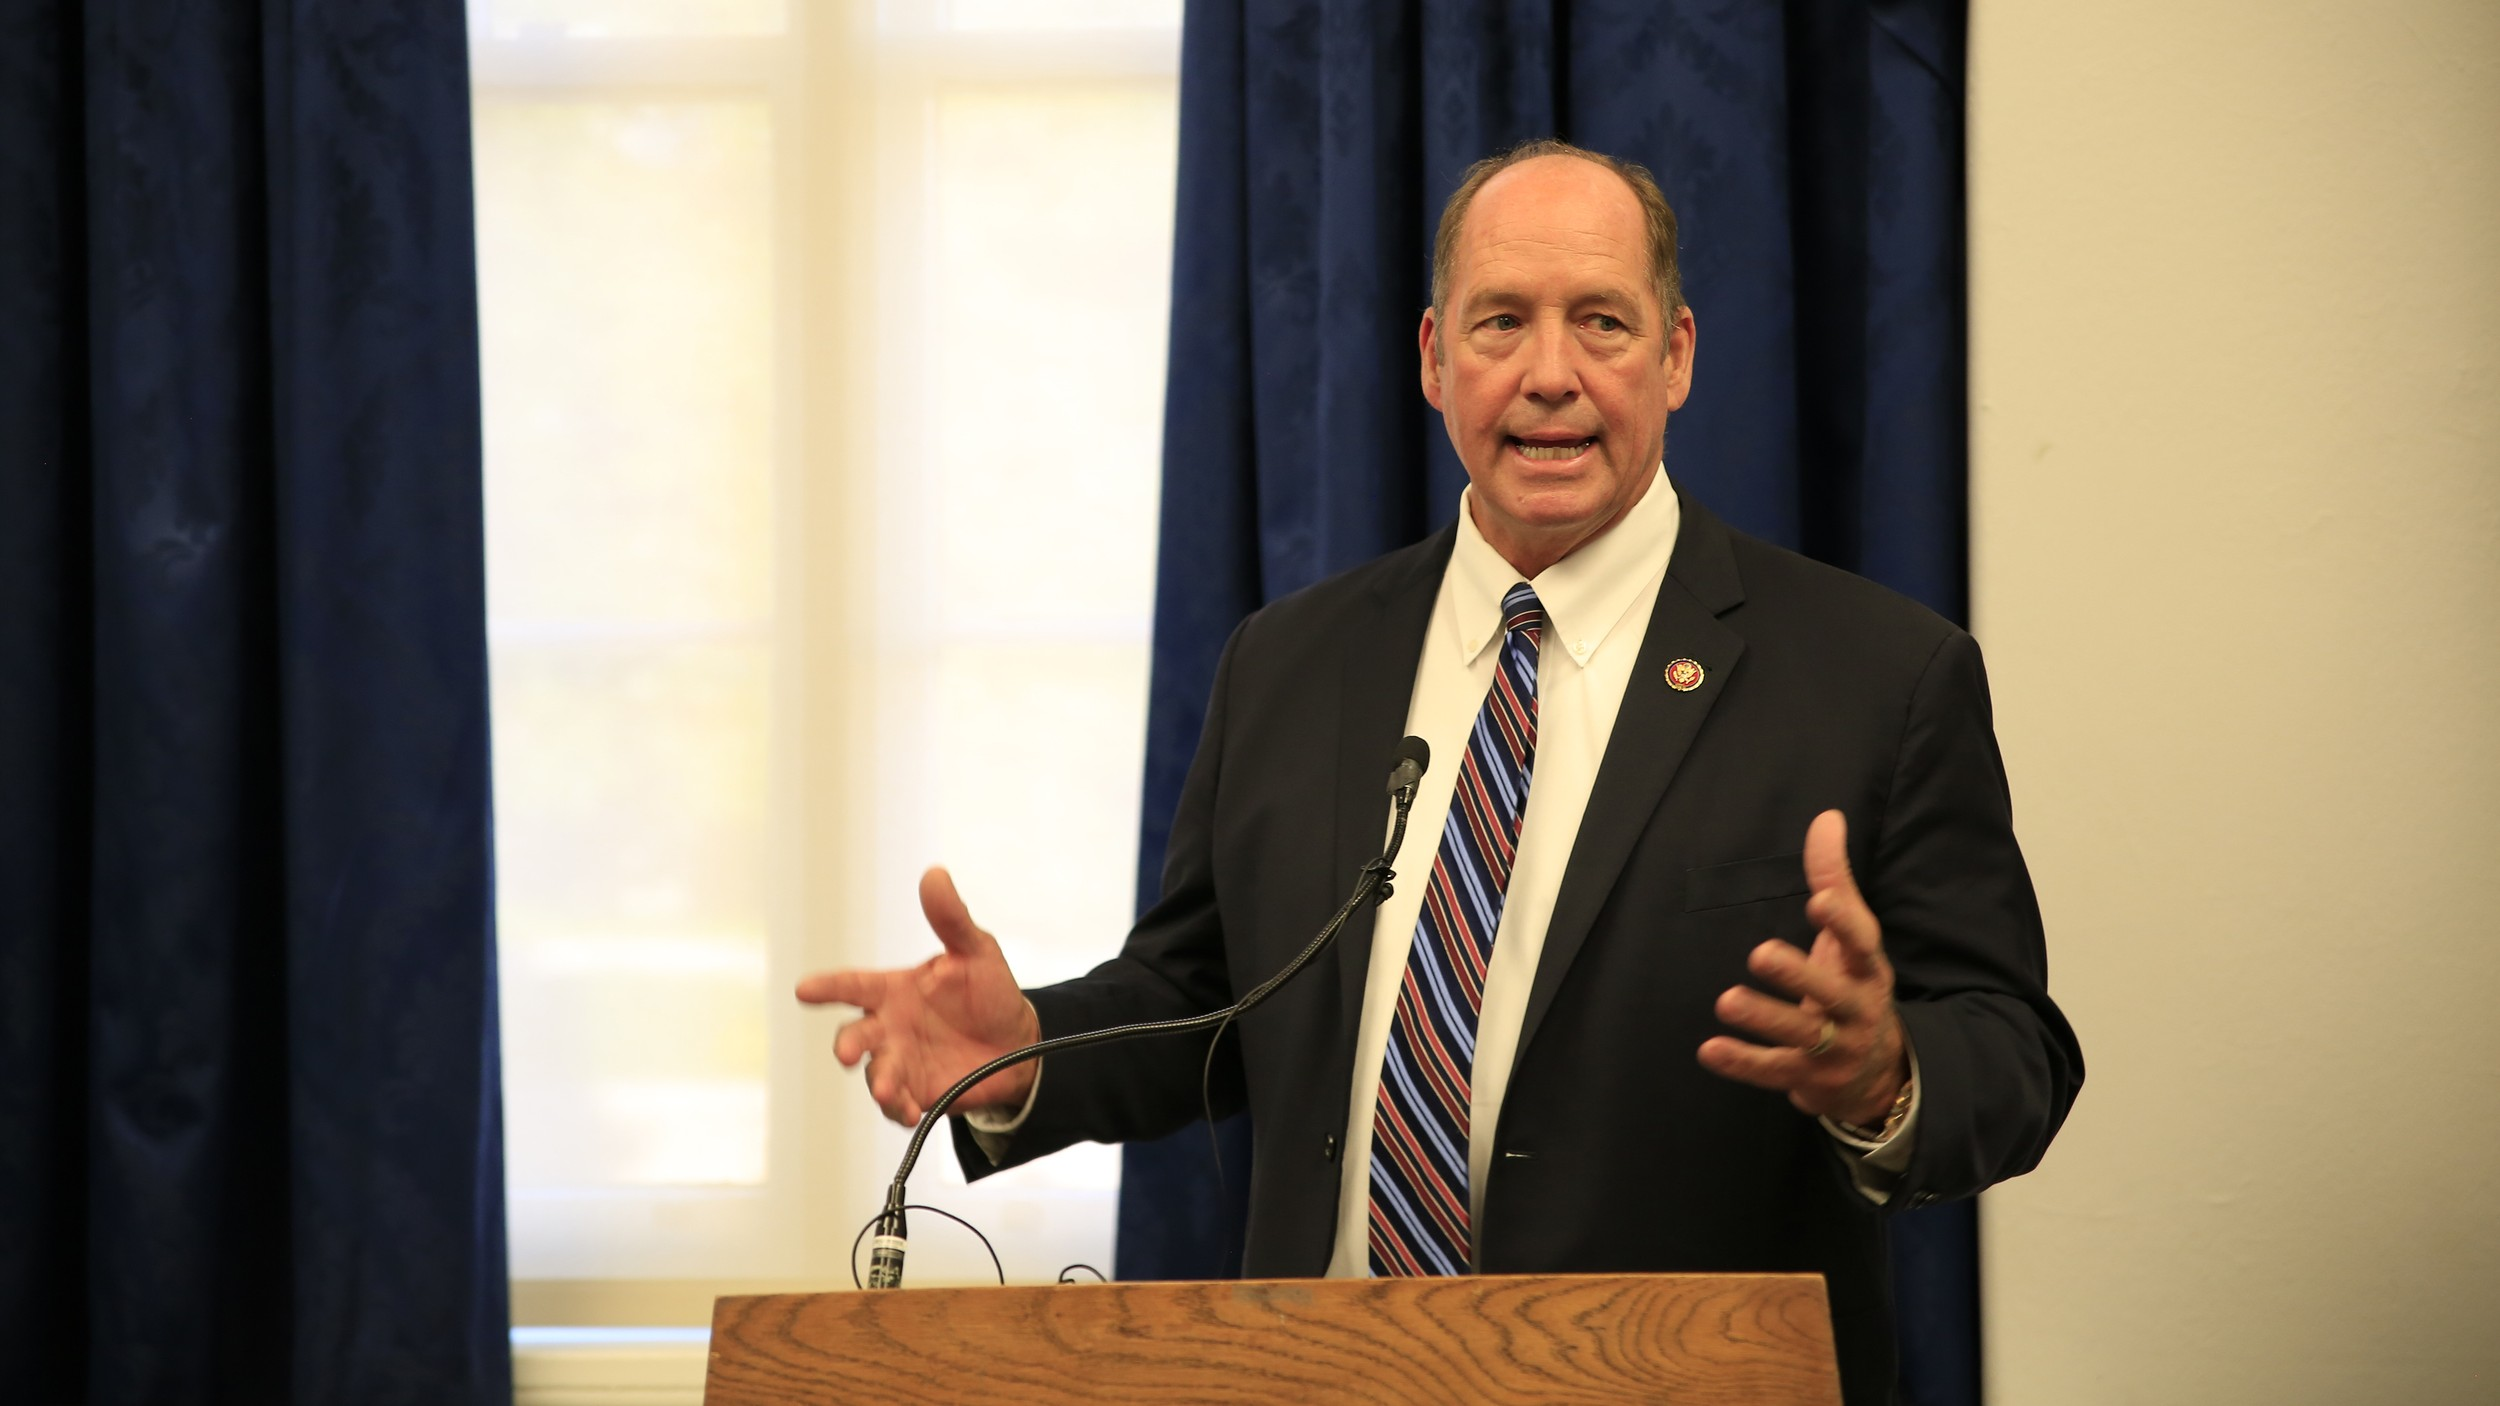 US Representative Ted Yoho delivers remarks at a hearing of the Congressional Cambodia Caucus to commemorate the 1991 Paris Peace Accords in Washington, Oct. 21, 2019.